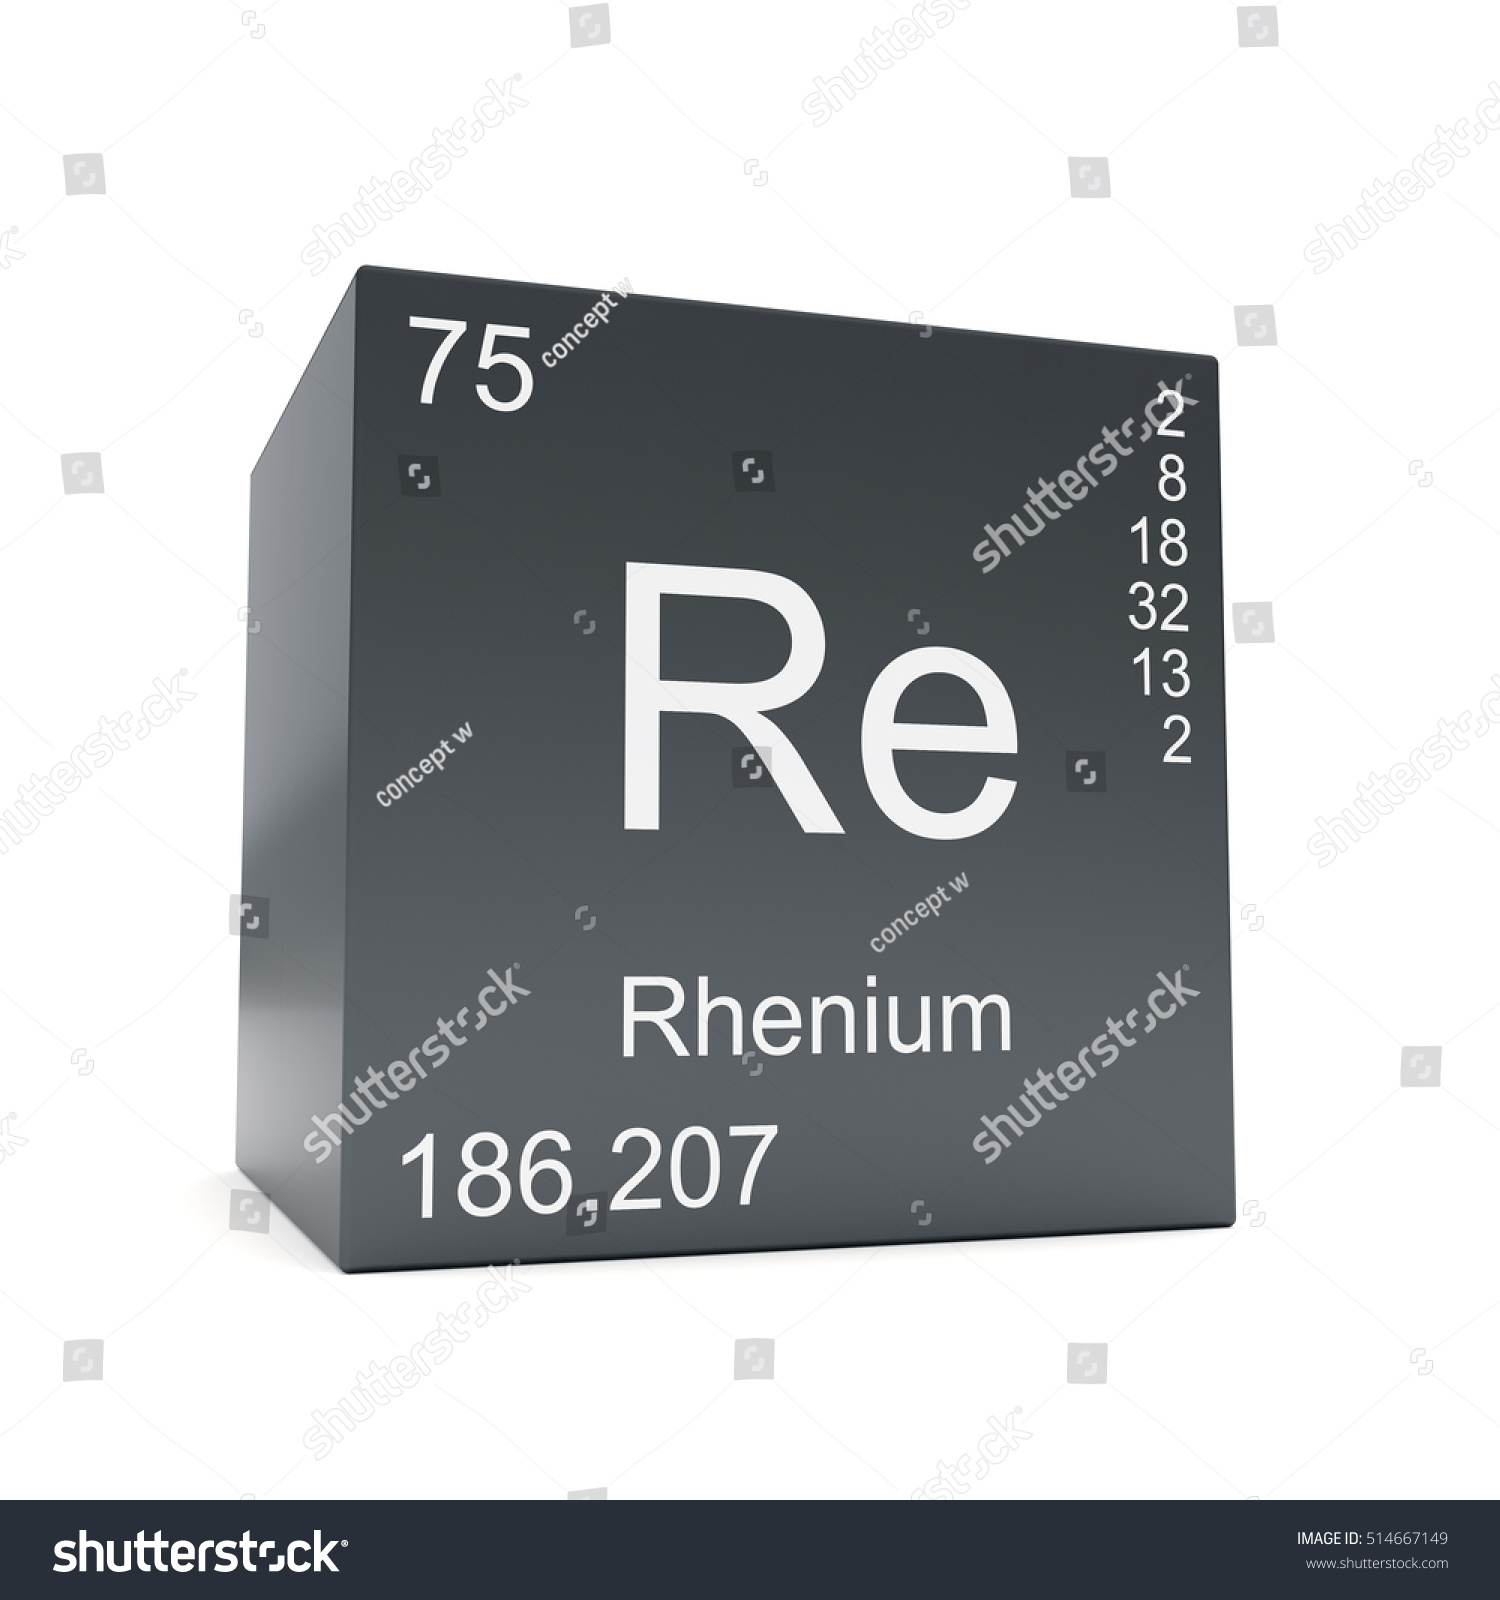 Carbon monoxide symbol periodic table image collections periodic rhenium location on periodic table aviongoldcorp rhenium chemical element symbol periodic table stock ilration gamestrikefo image gamestrikefo Choice Image